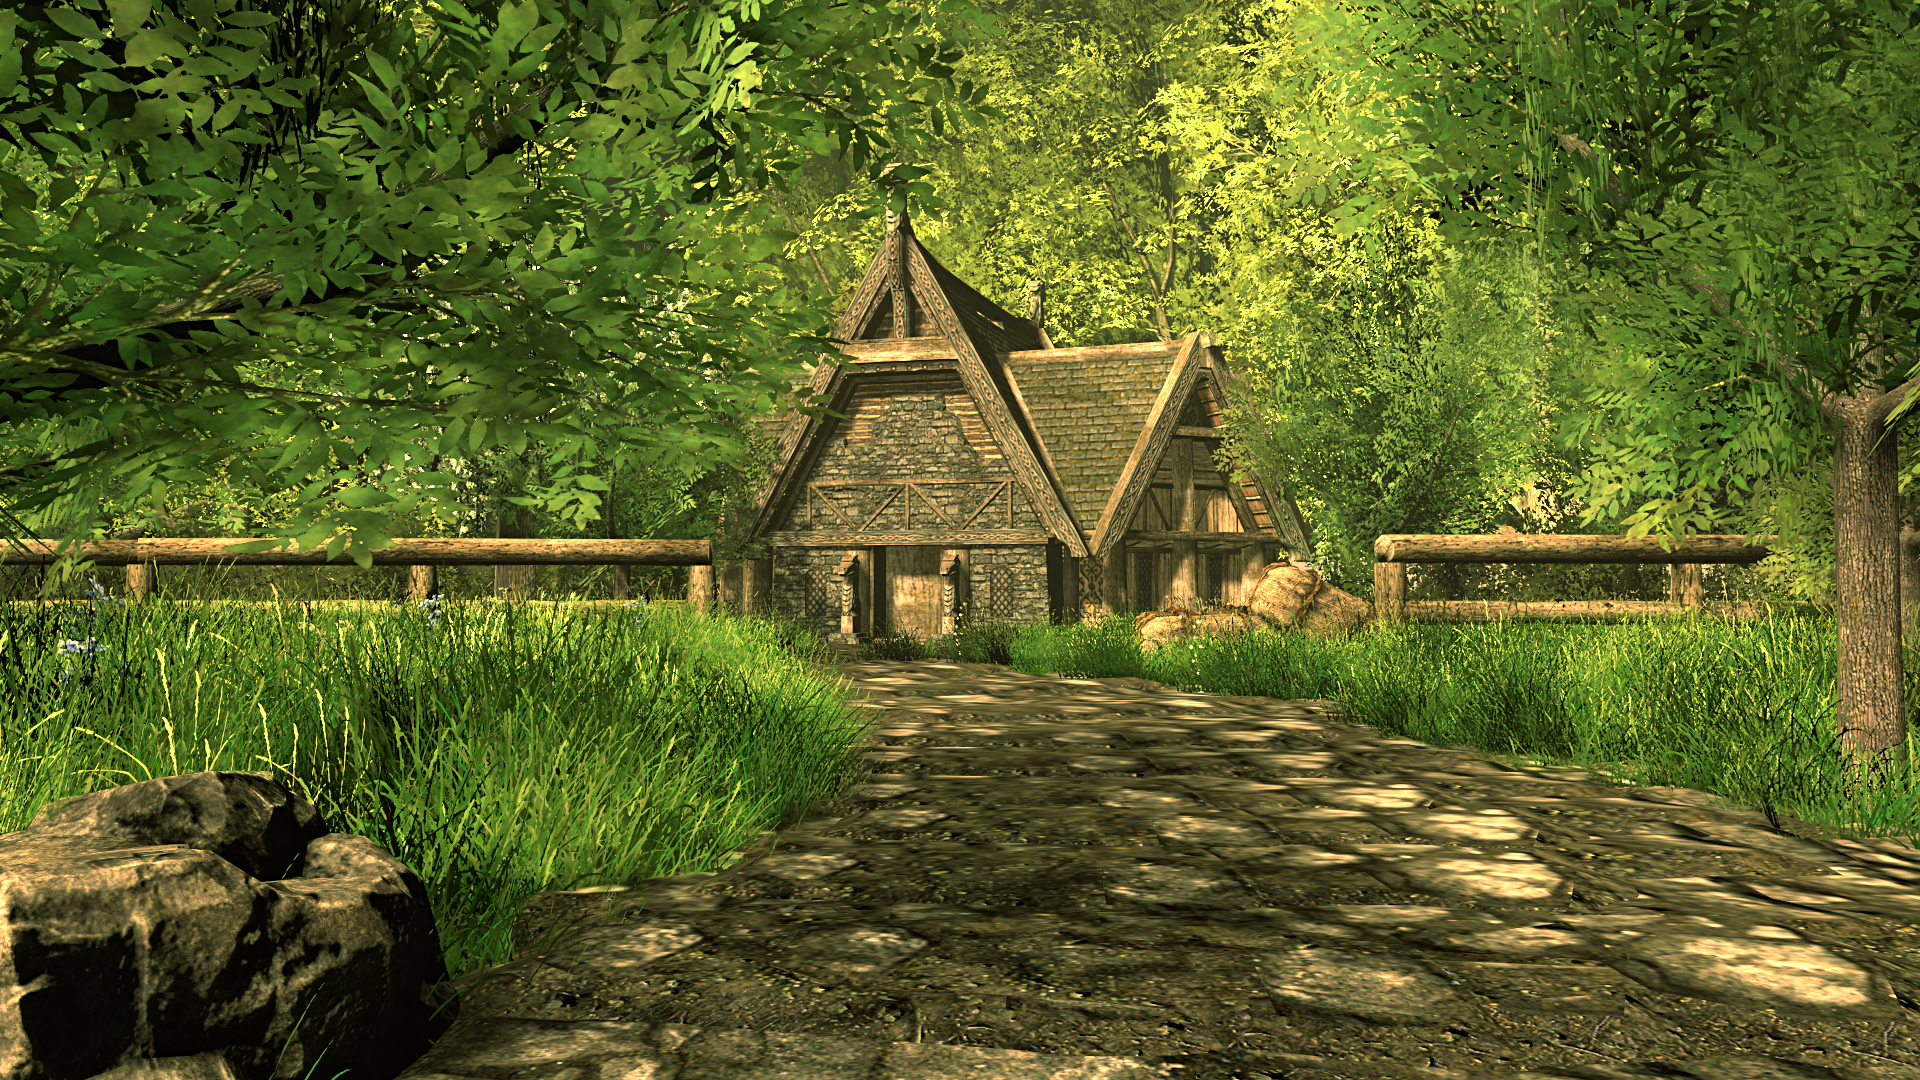 House in the woods sfm by thefunnykep on deviantart - The house in the woods ...